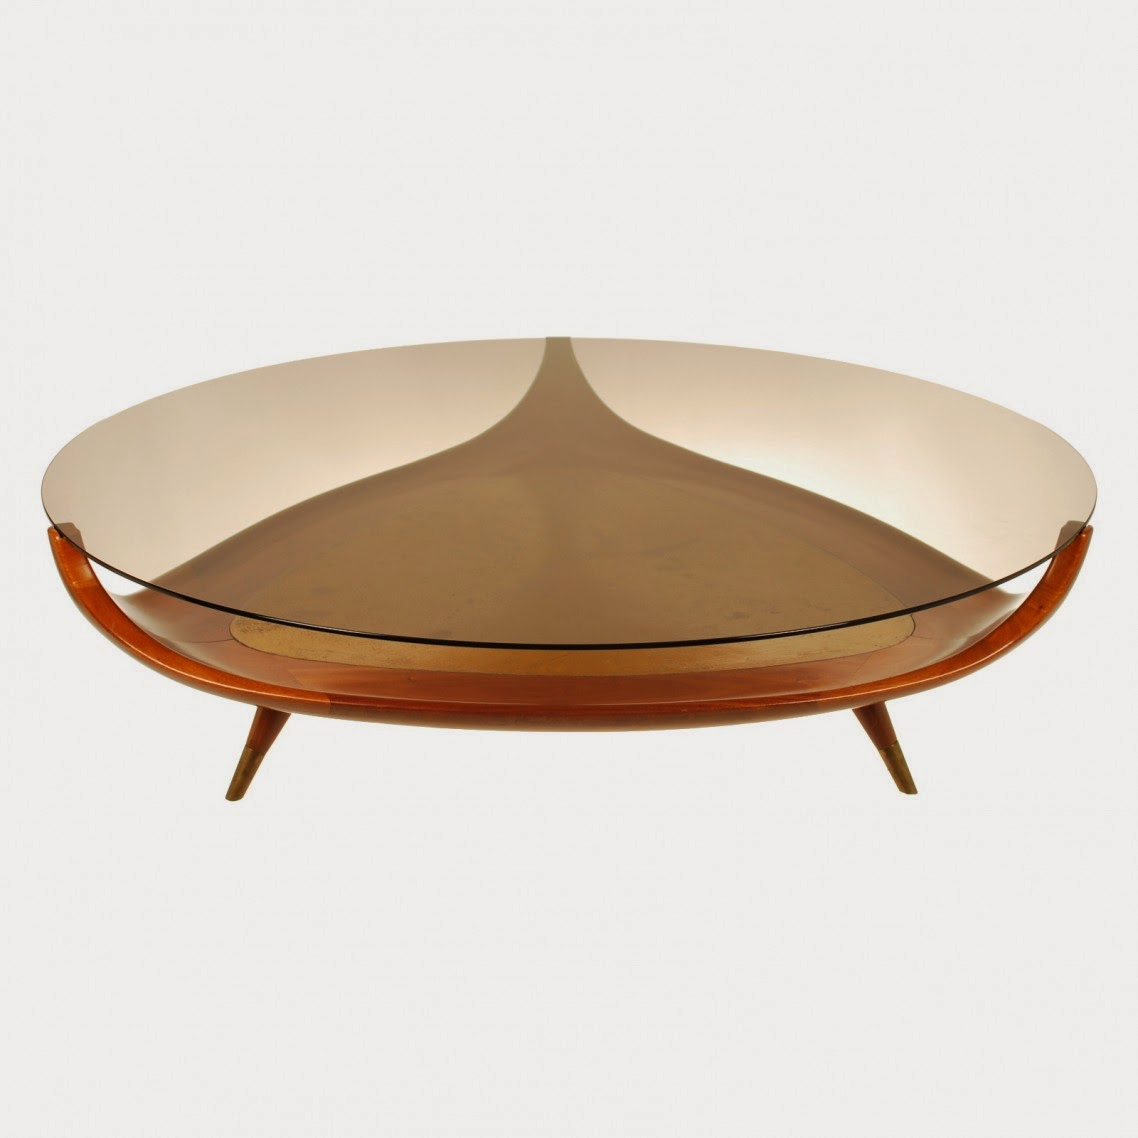 Superb Design Of The Oval Glass Coffe Table With Unique Shape Added With  Three Legs Areas. Artistic Small Round Coffee Table   MidCityEast